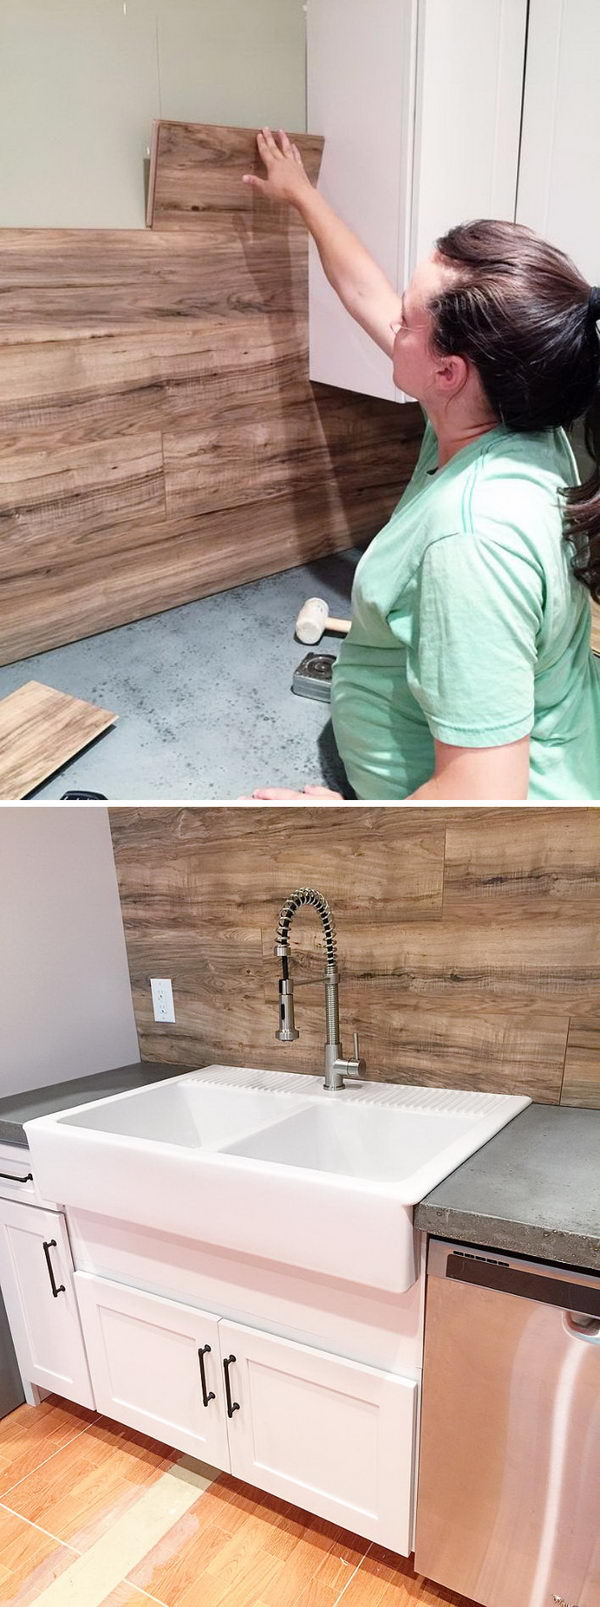 Laminate Flooring As Kitchen Backsplash.